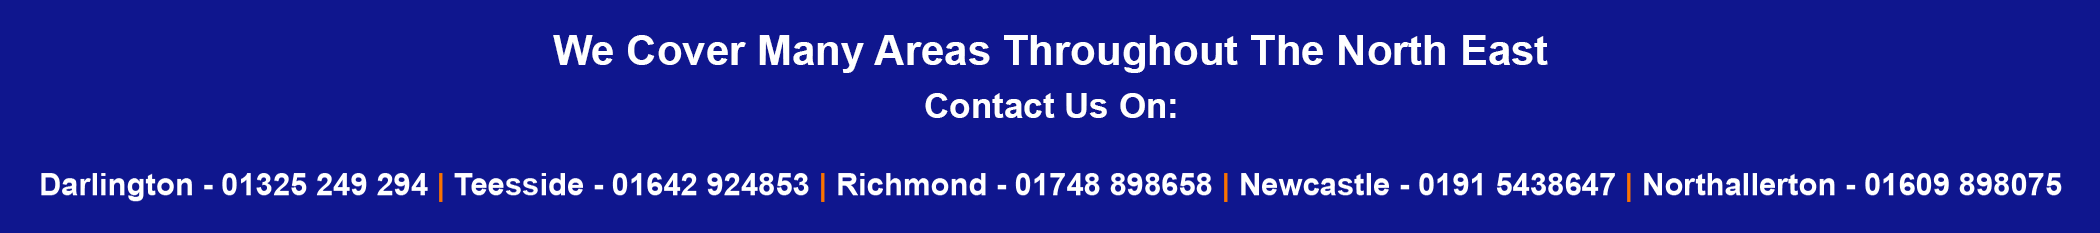 We have numerous branches which can be contacted via the telephone numbers from the contact us page!